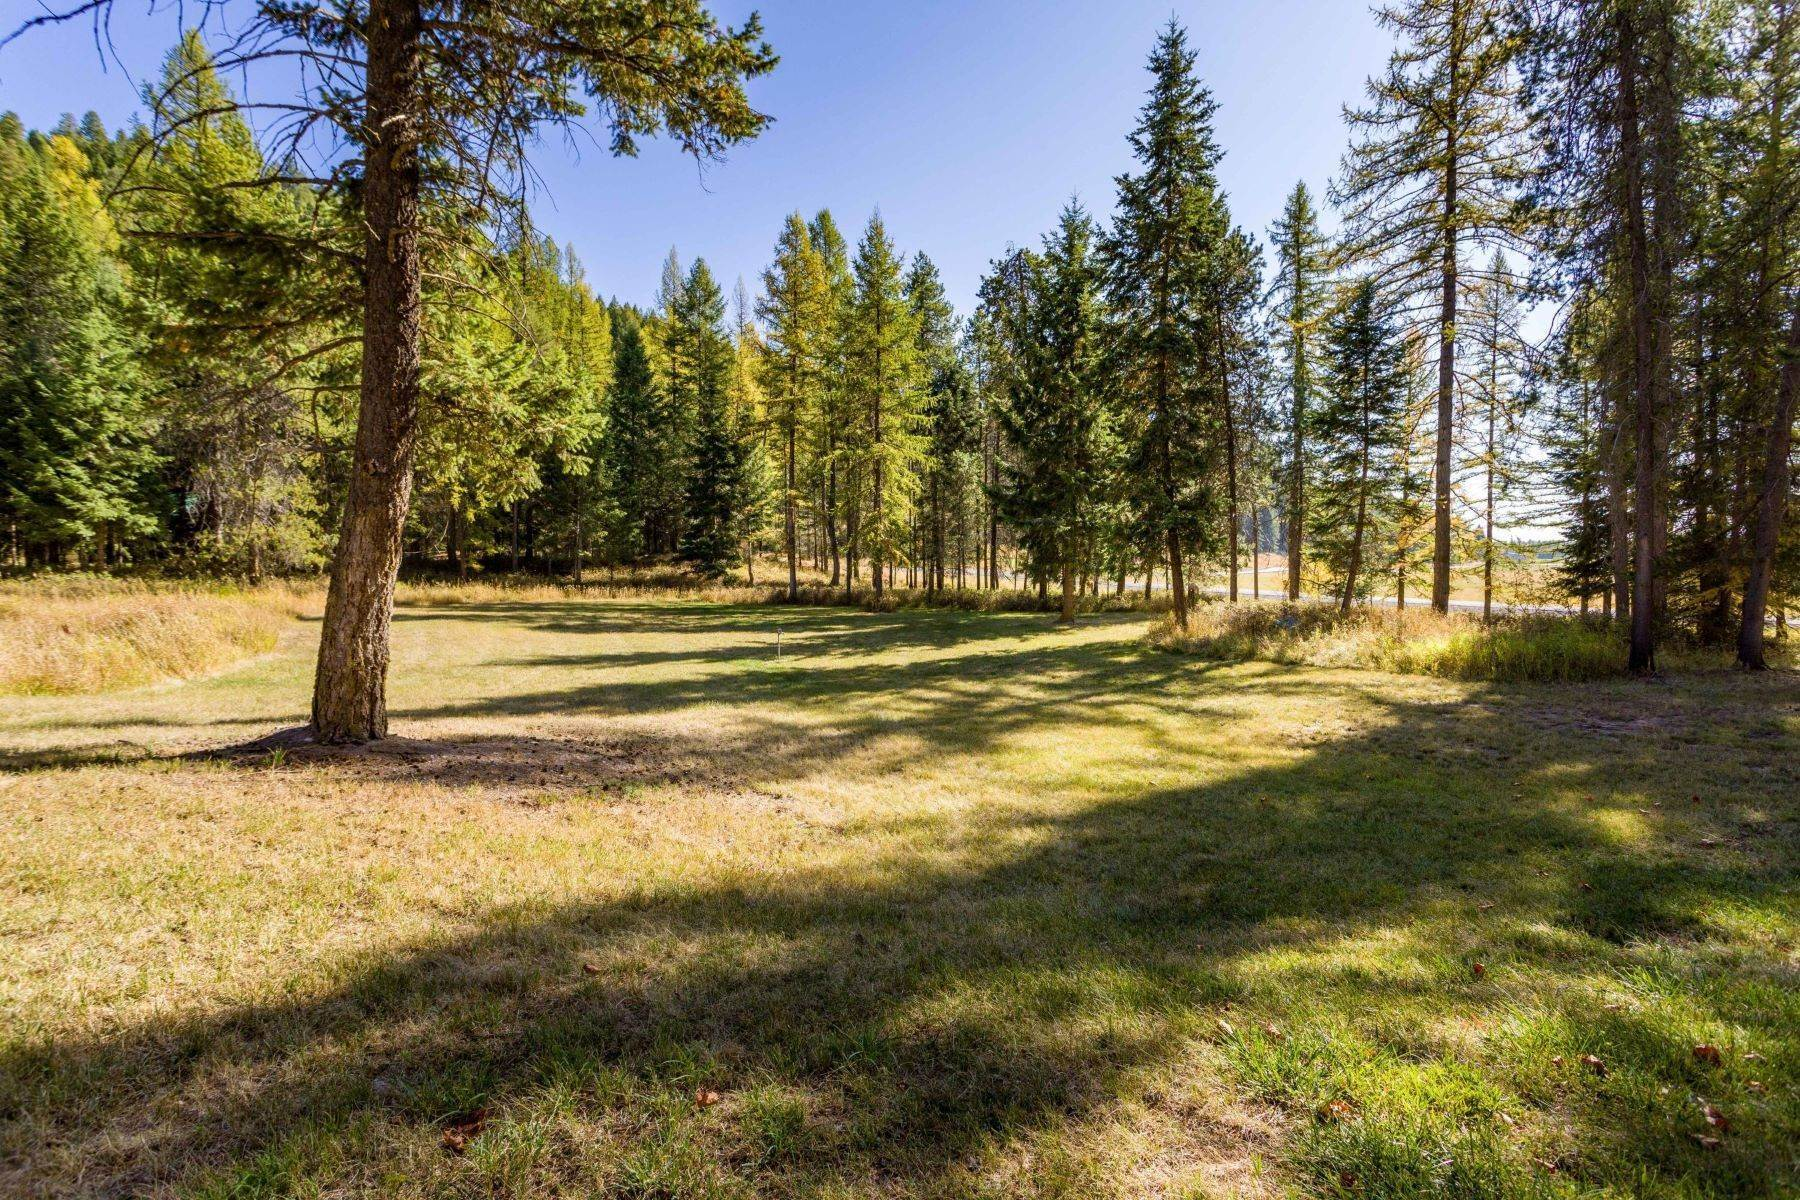 16. Land for Sale at Northwest Montana Forest, Meadows and Ponds 295 Garland Lane Whitefish, Montana 59937 United States